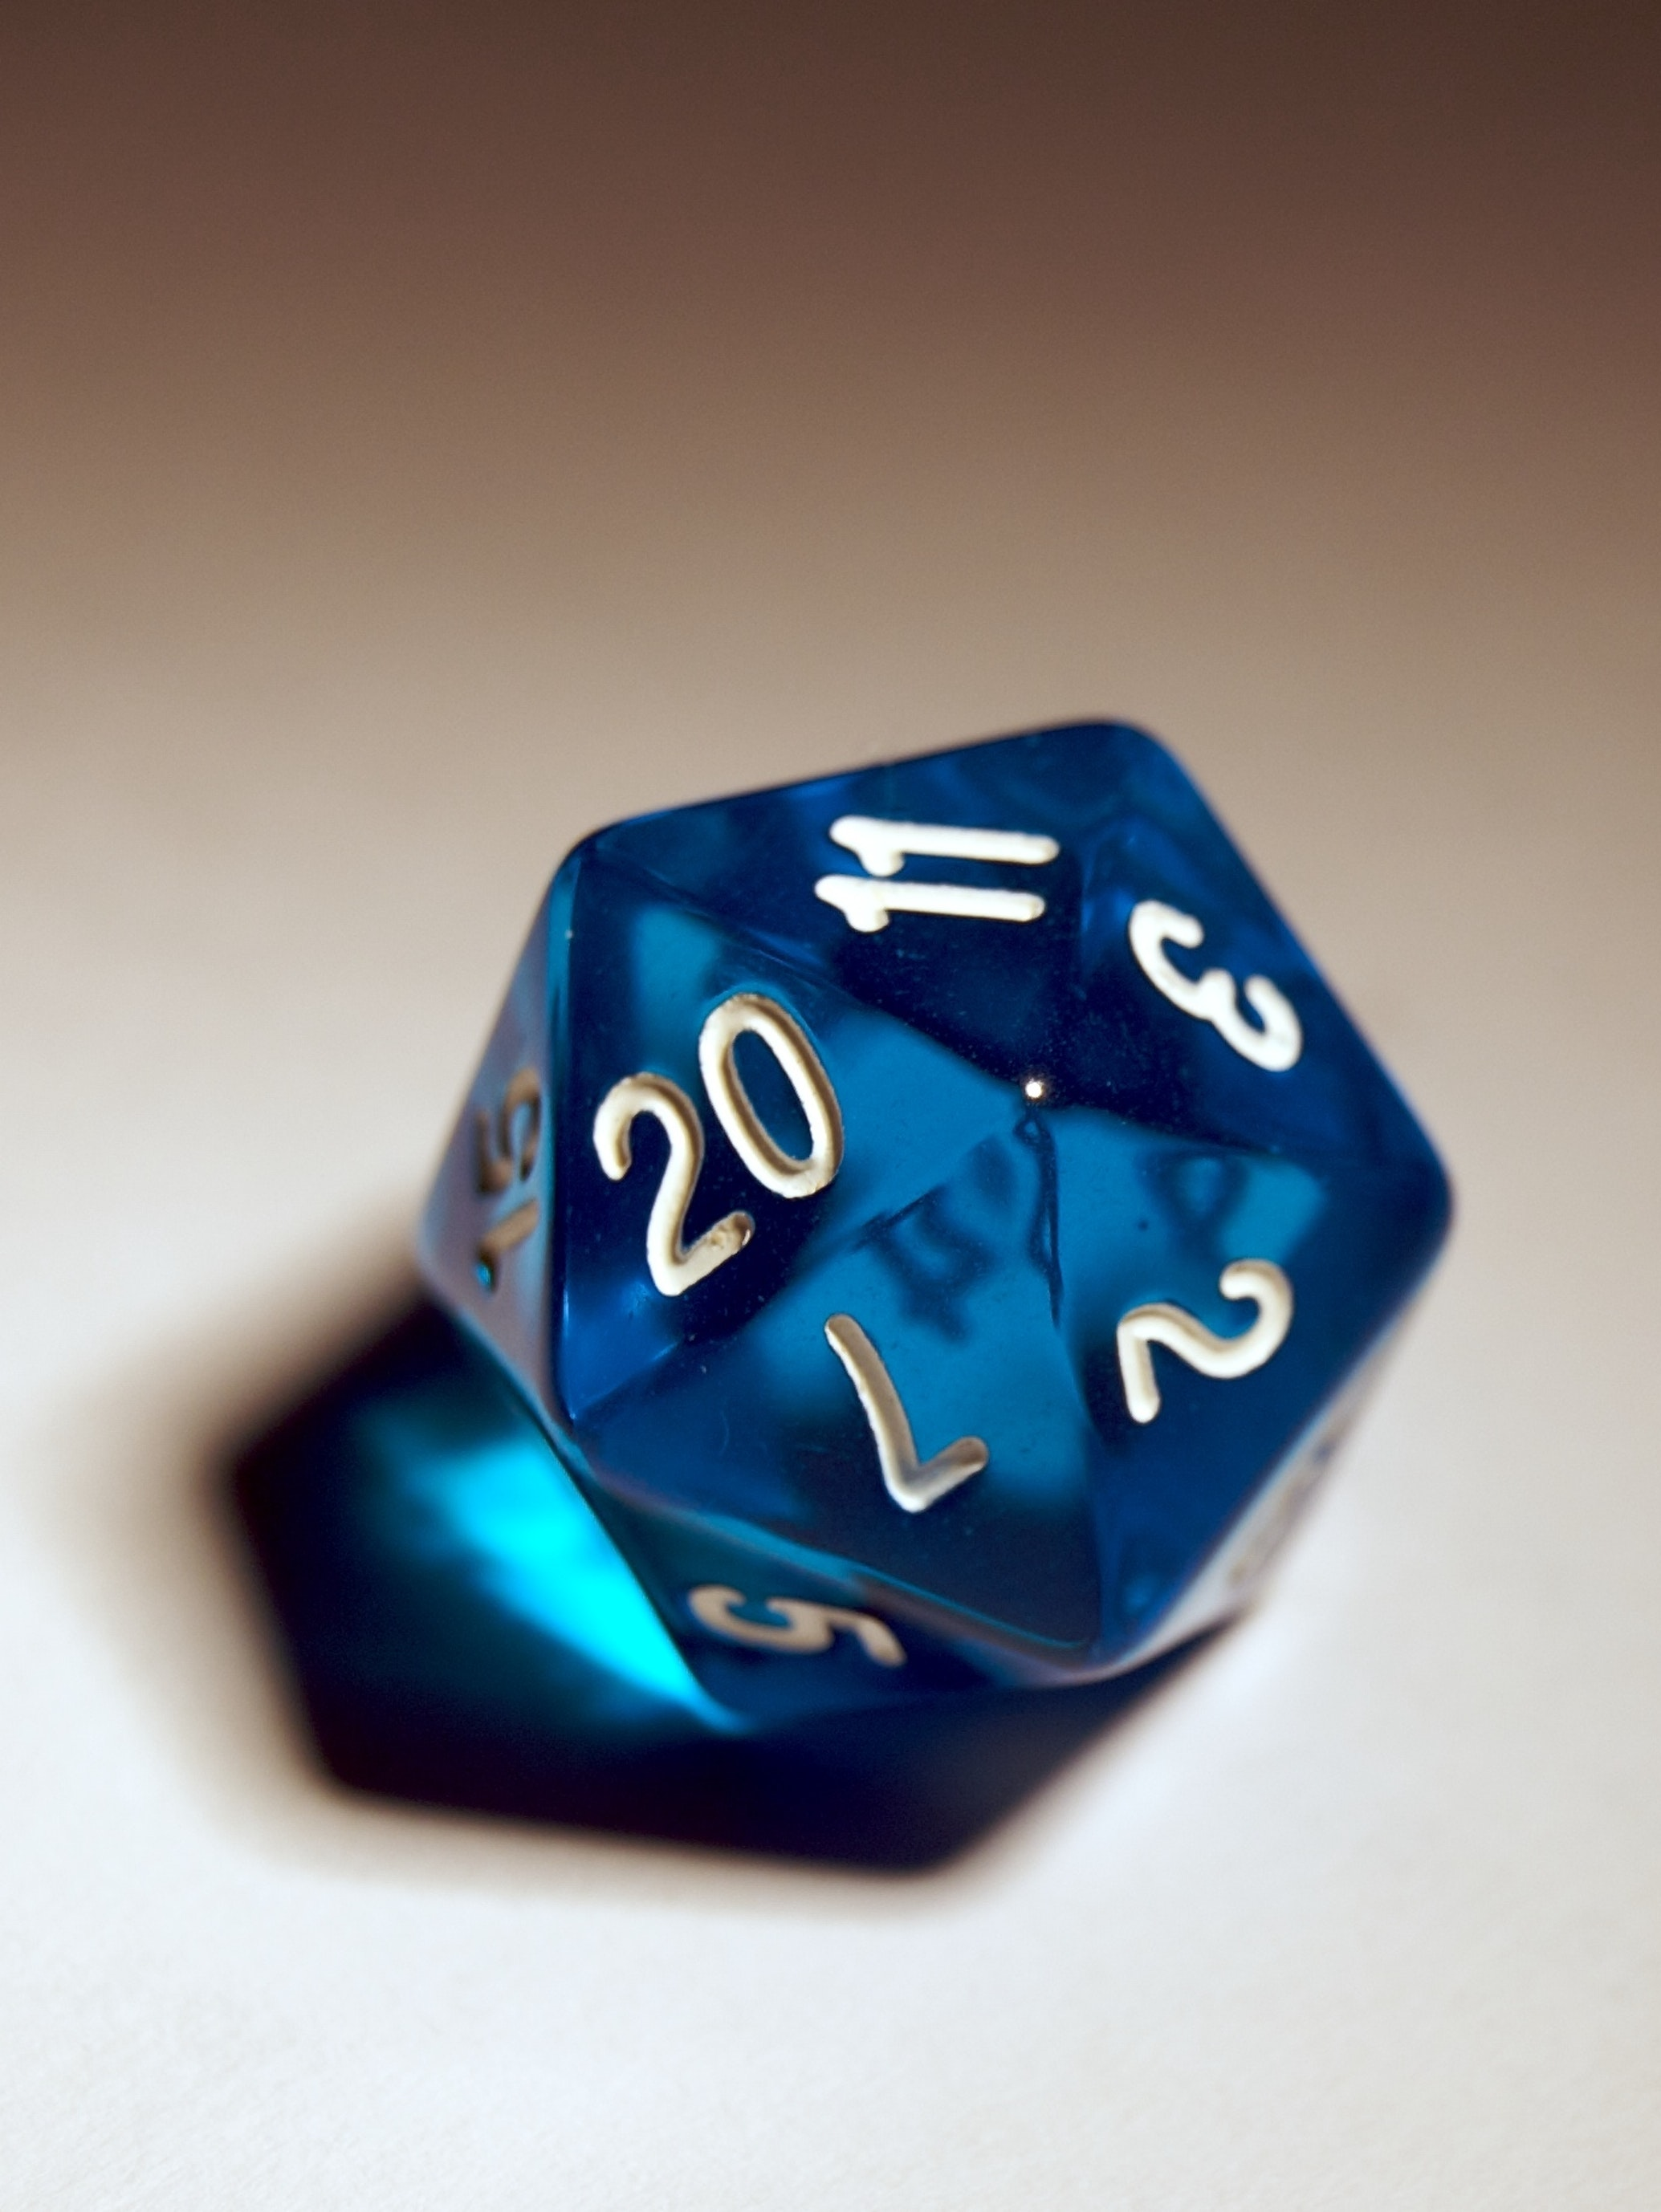 It all begins with a d20.